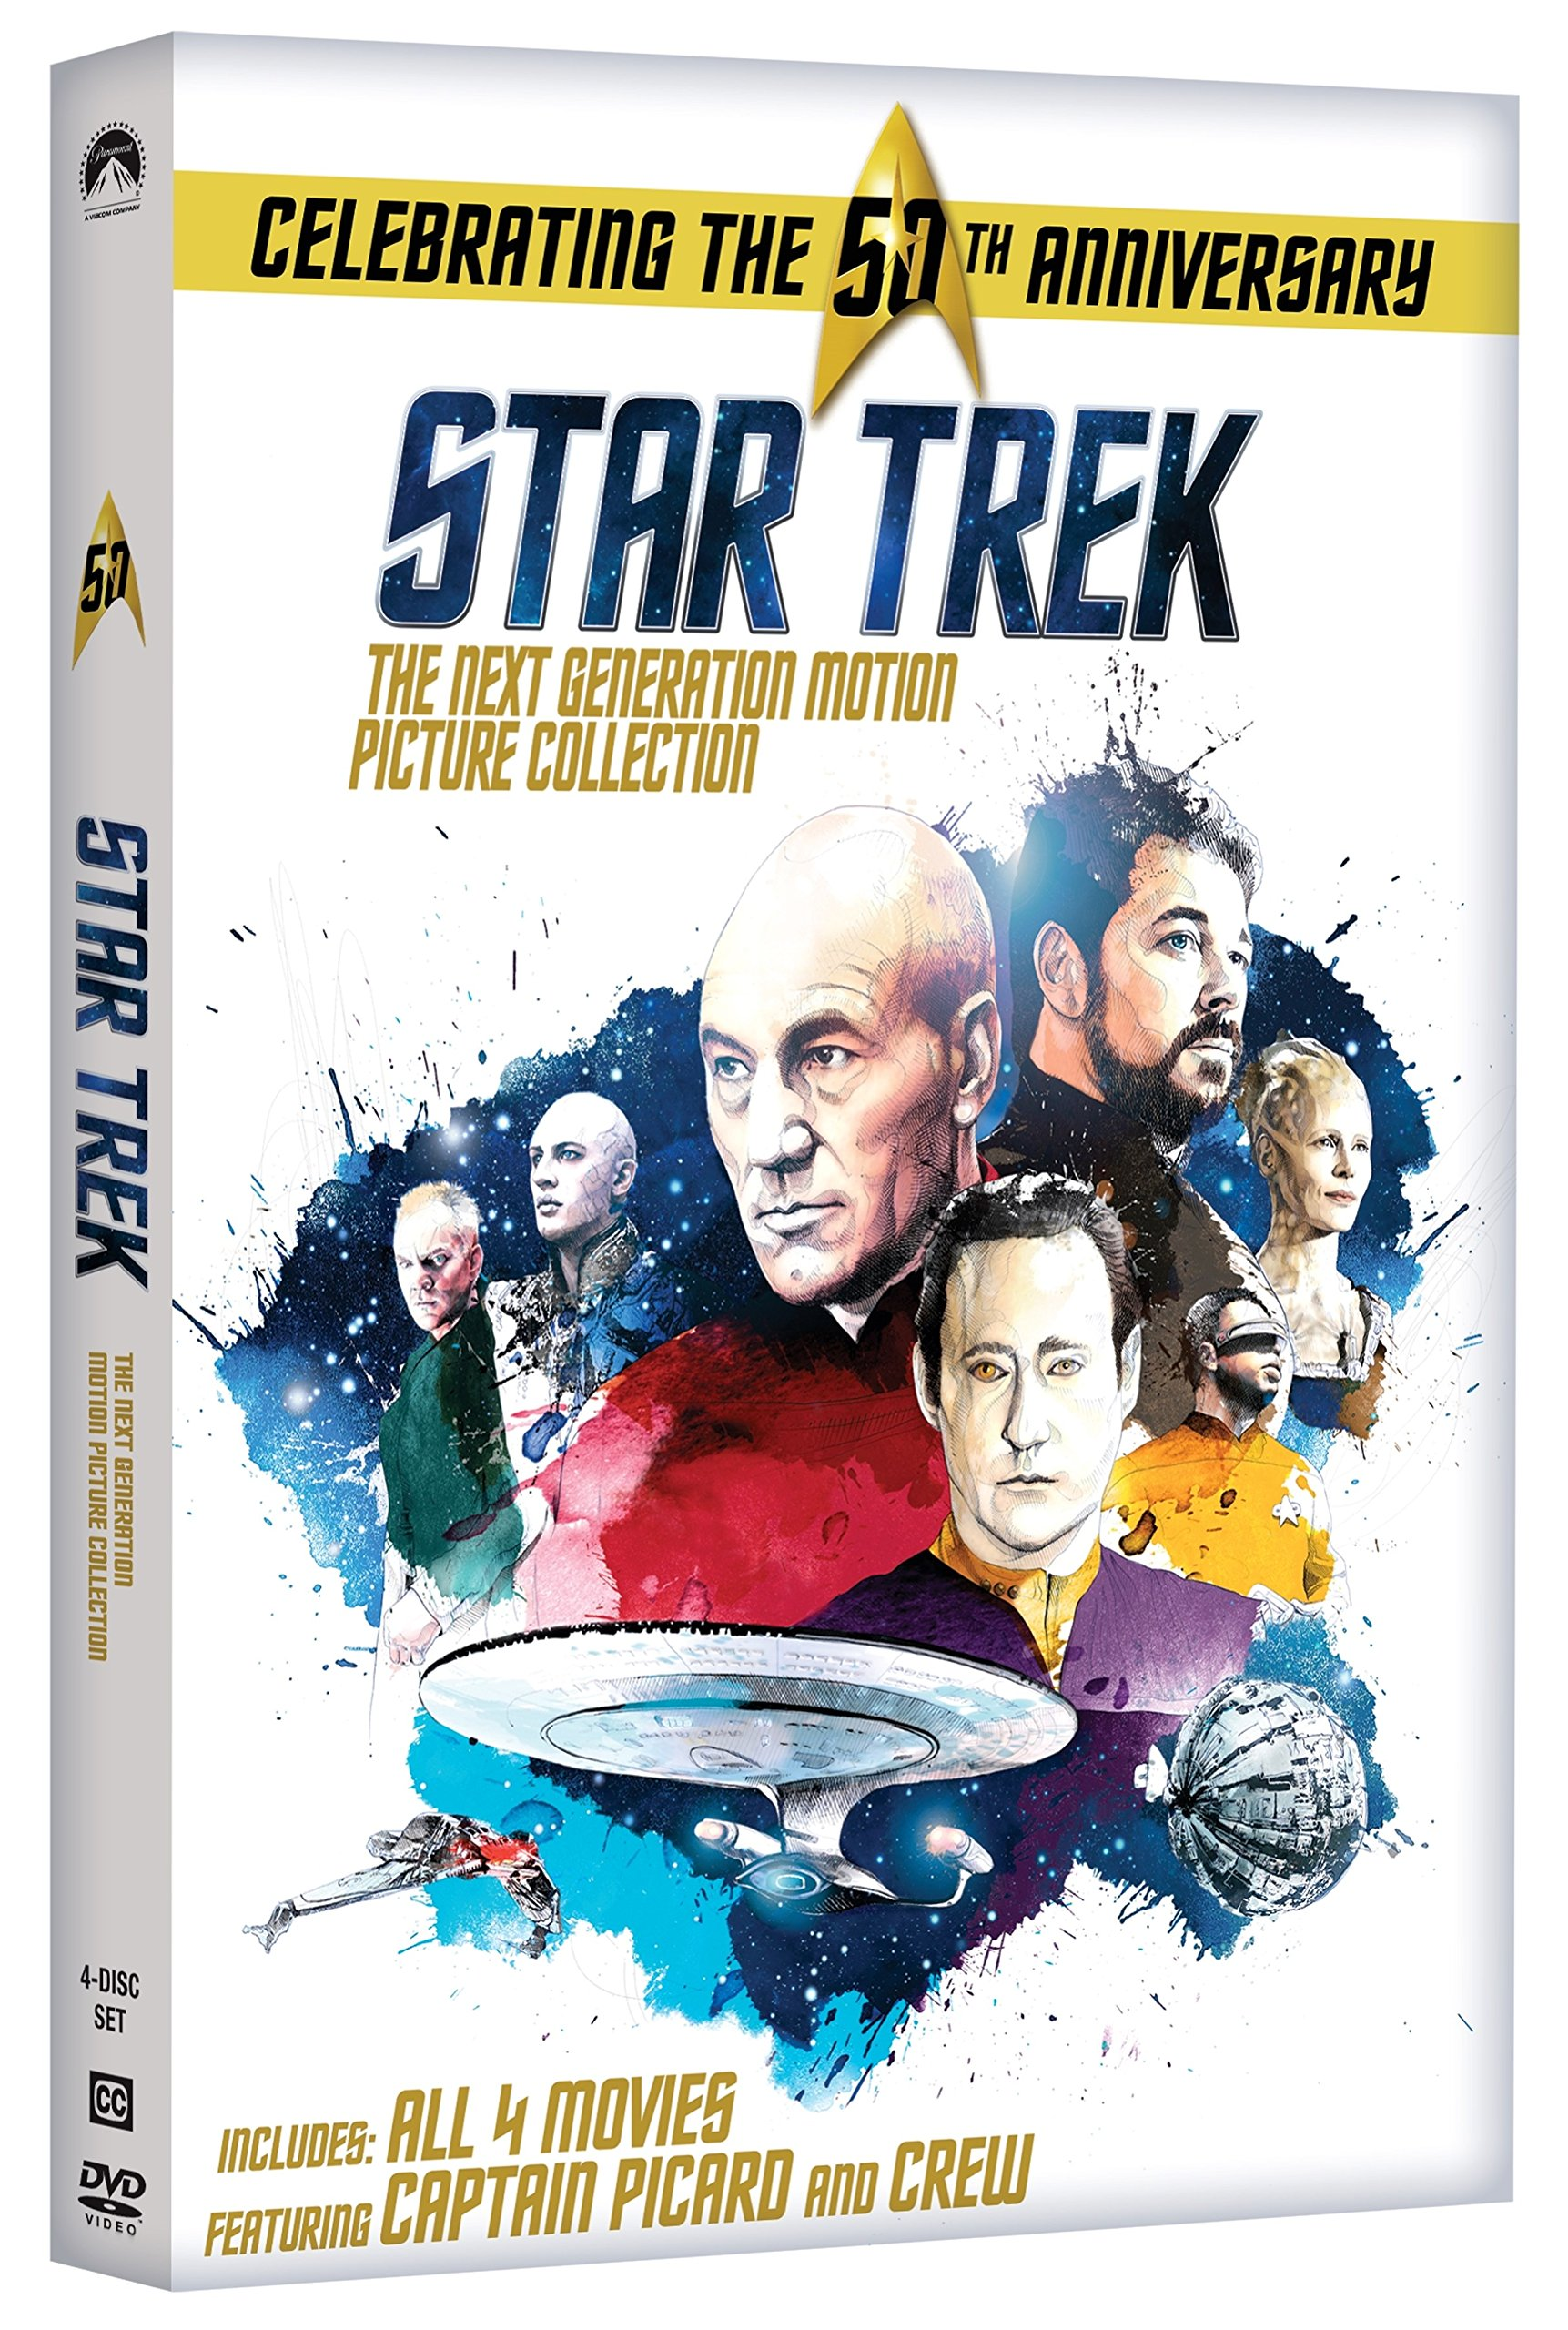 DVD : Star Trek: The Next Generation Motion Picture Collection (Boxed Set, Widescreen, , Dubbed, Repackaged)